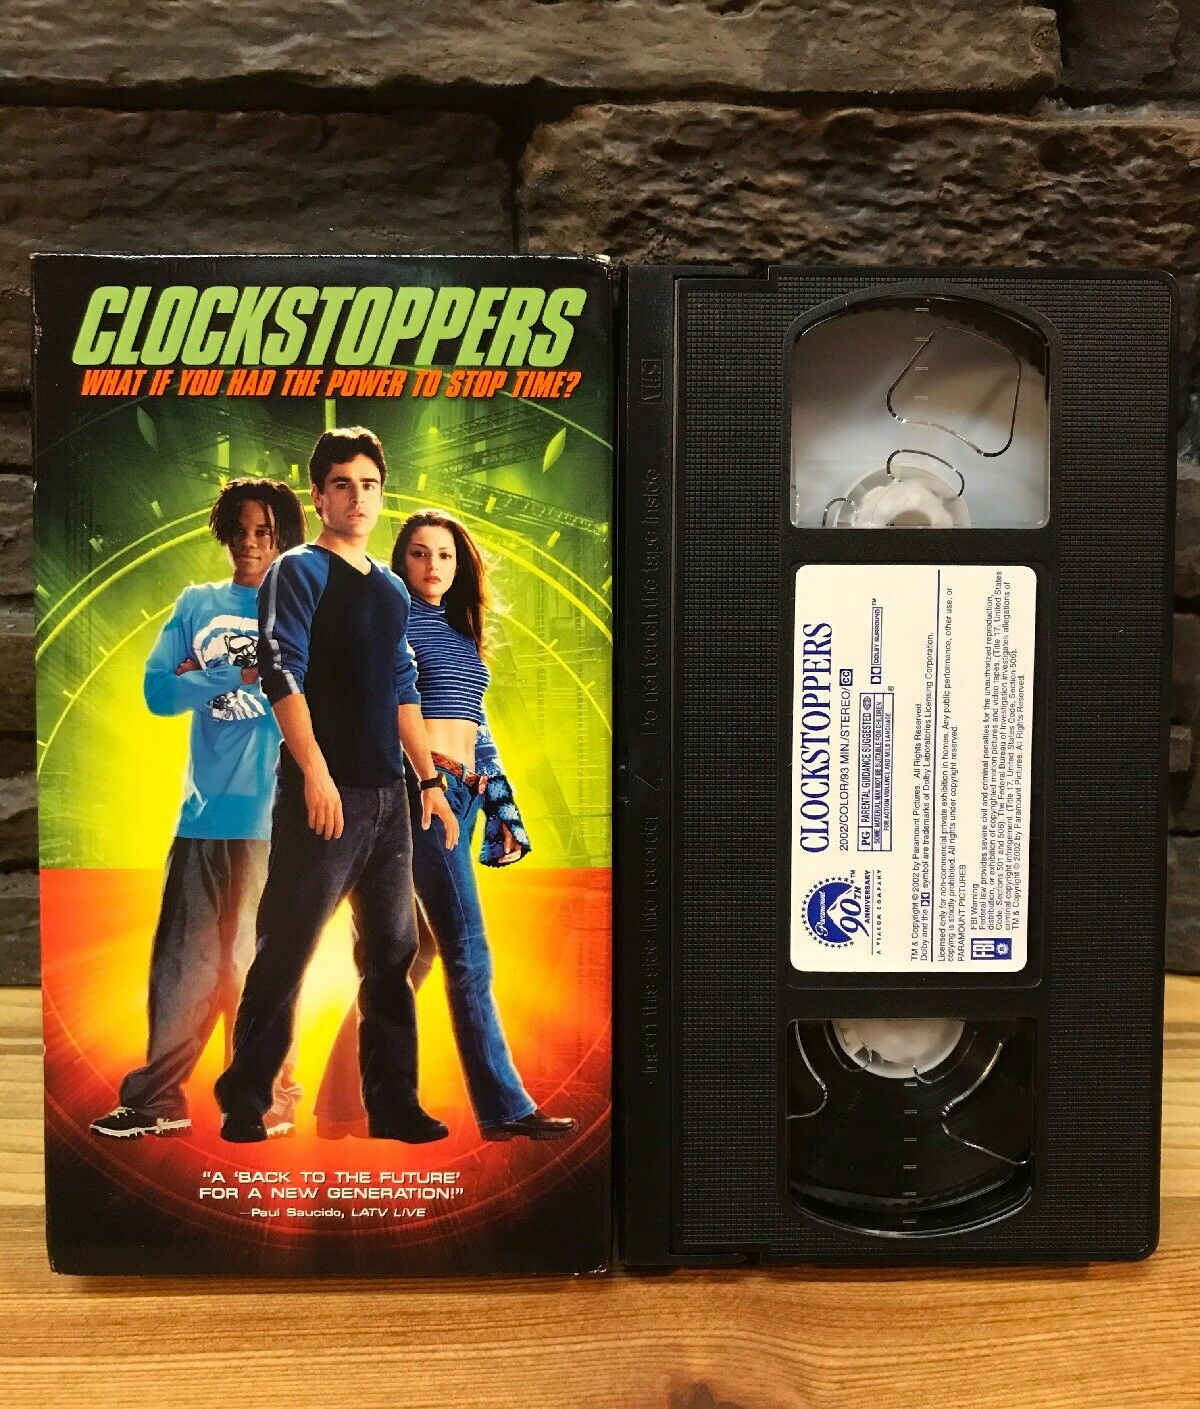 Clockstoppers (2002 VHS)